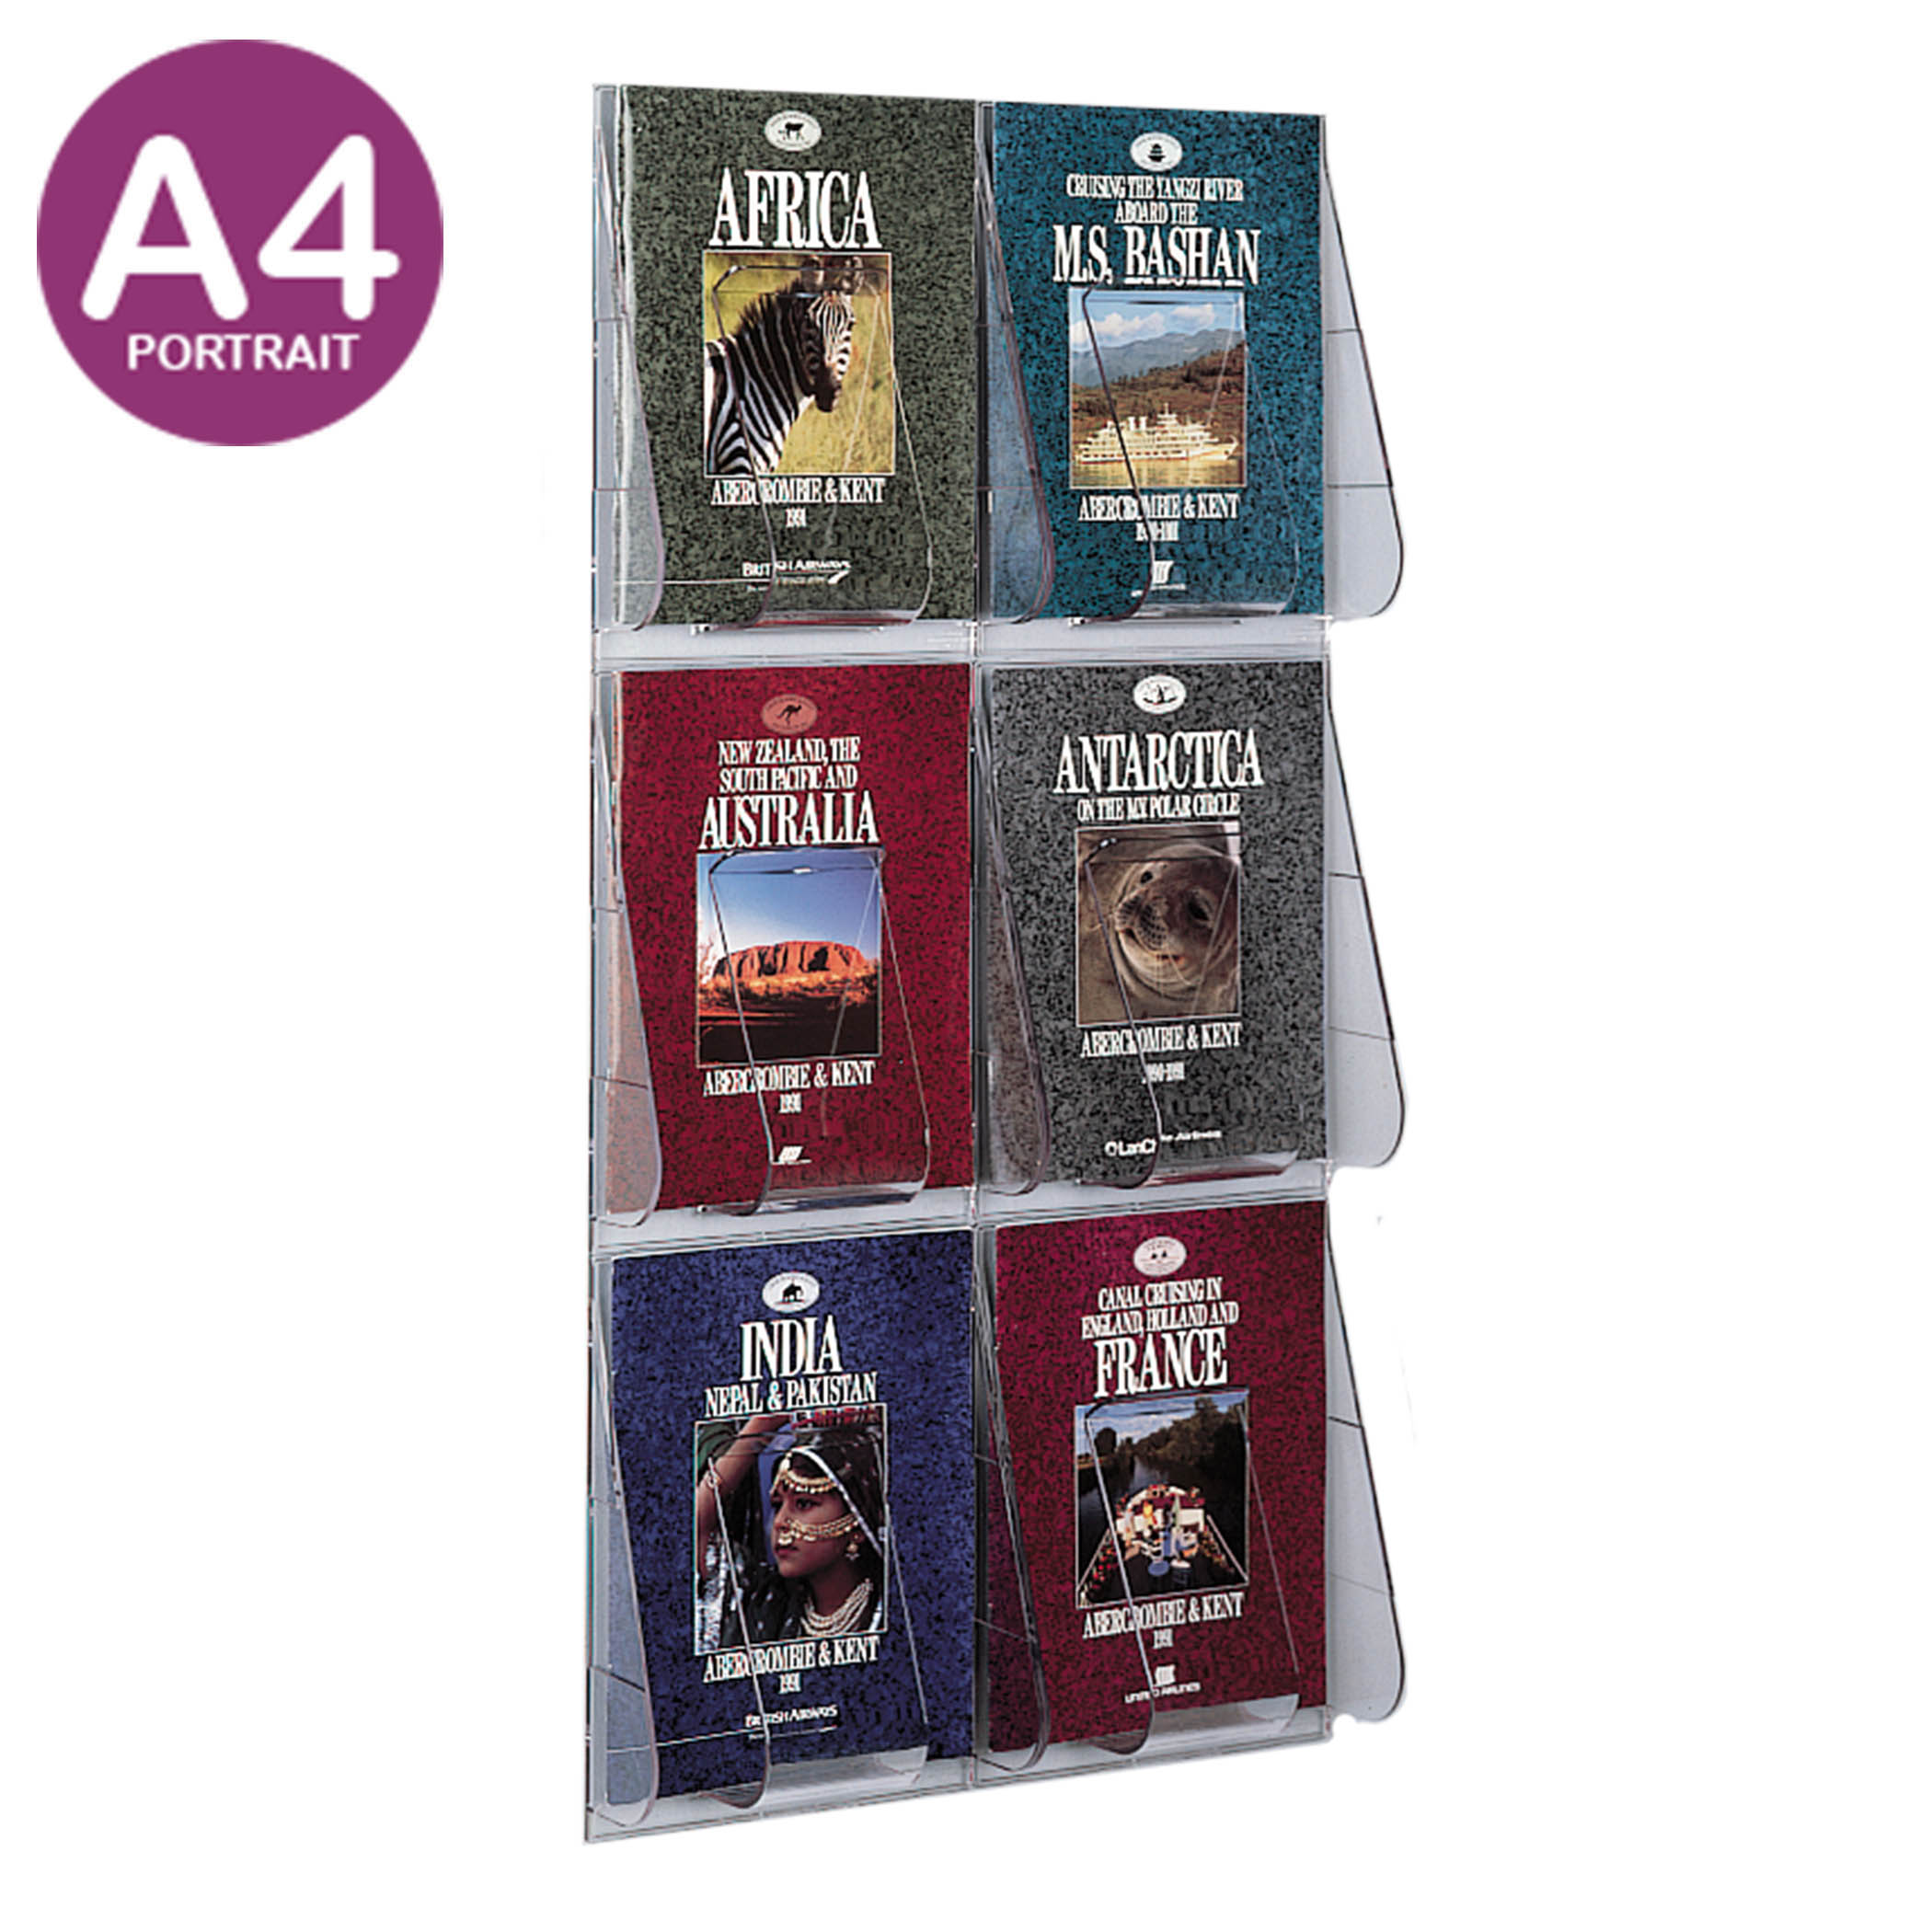 plastic office mounted commercial decoration uk magazine holders racks display single countertop wall stand mount for brass buy sale tiered rack shelf stunning magazines holder leaflet brochure storage bamboo